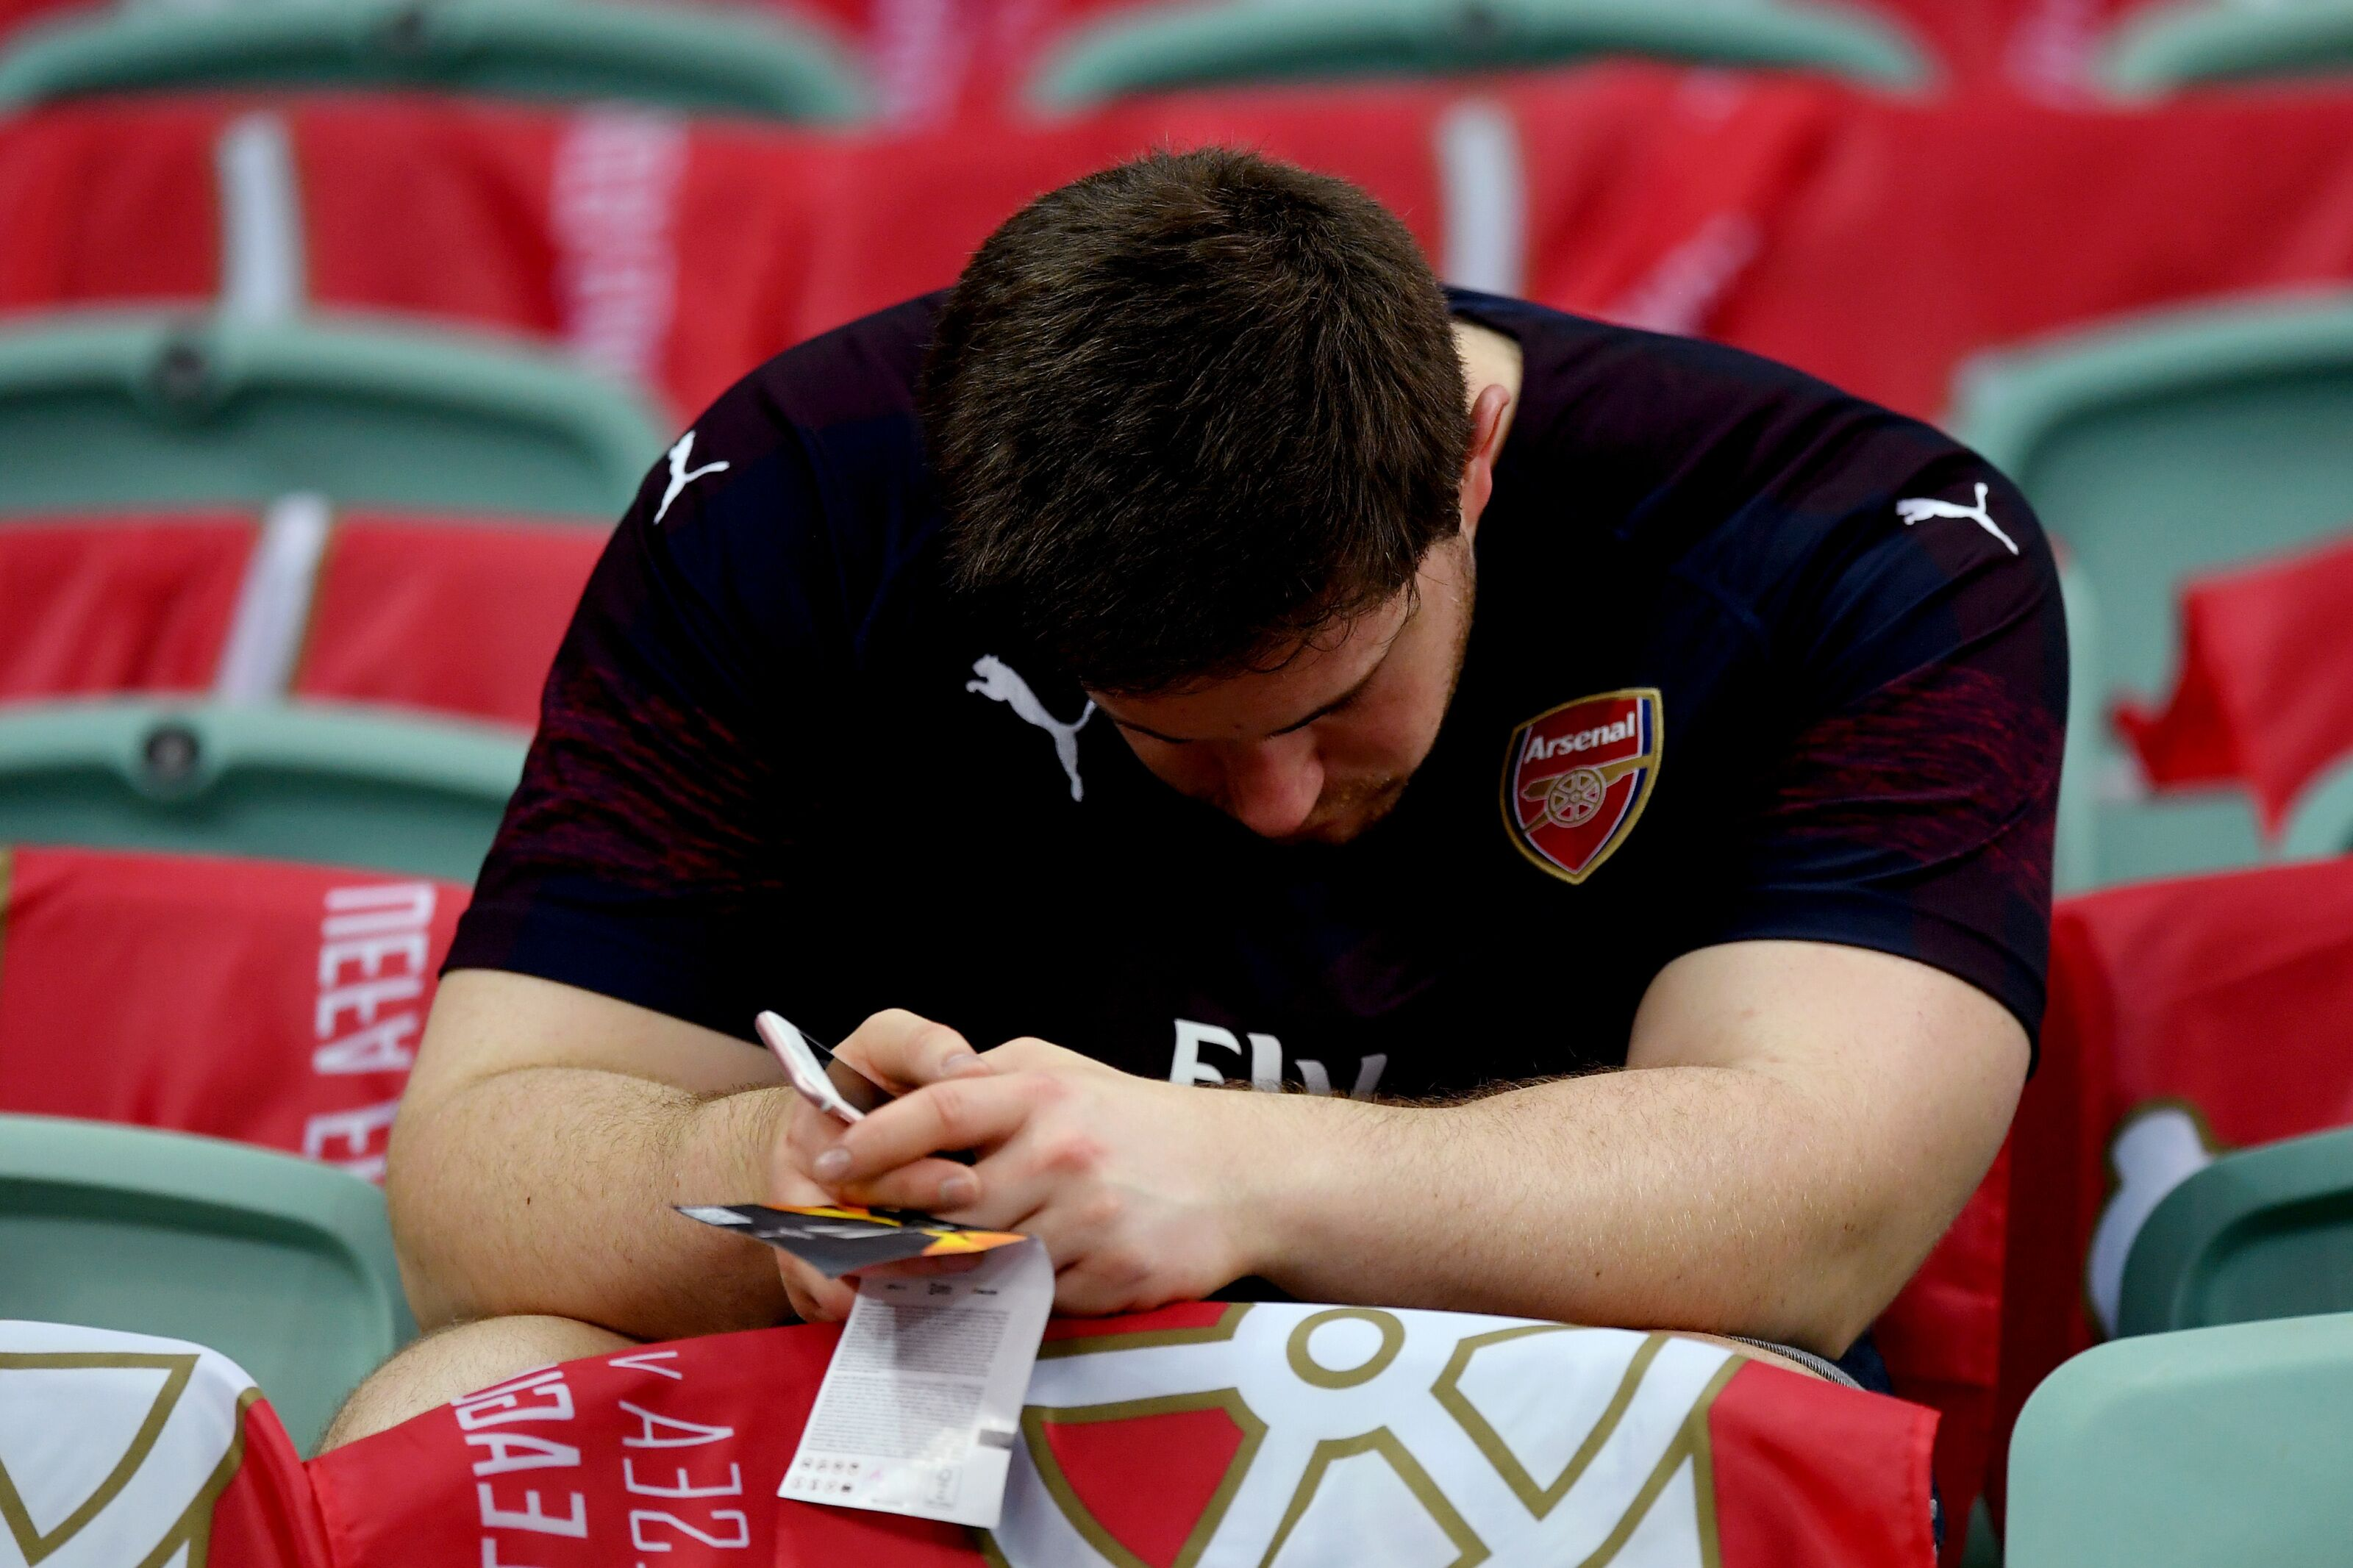 Arsenal is a giant mess and has seemingly lost its way